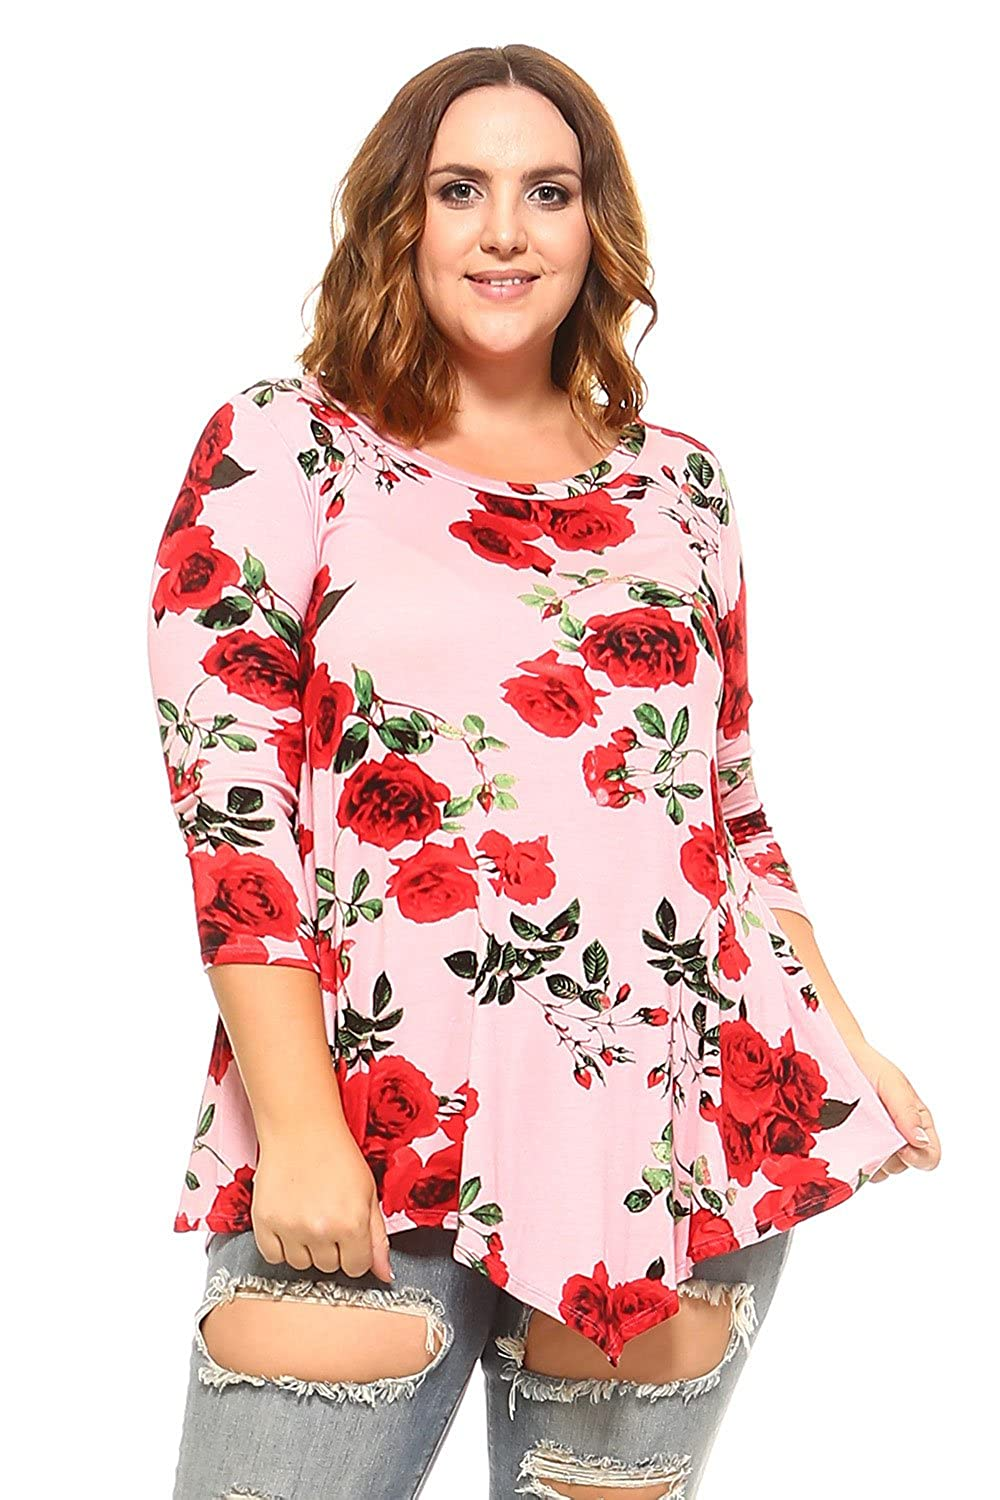 1380d64818f Made in USA Hankerchief , flare hem tunic tops. Lightweight soft fabric for  a comfortable feminine touch. Garment care: gentle machine wash cold / hand  wash ...